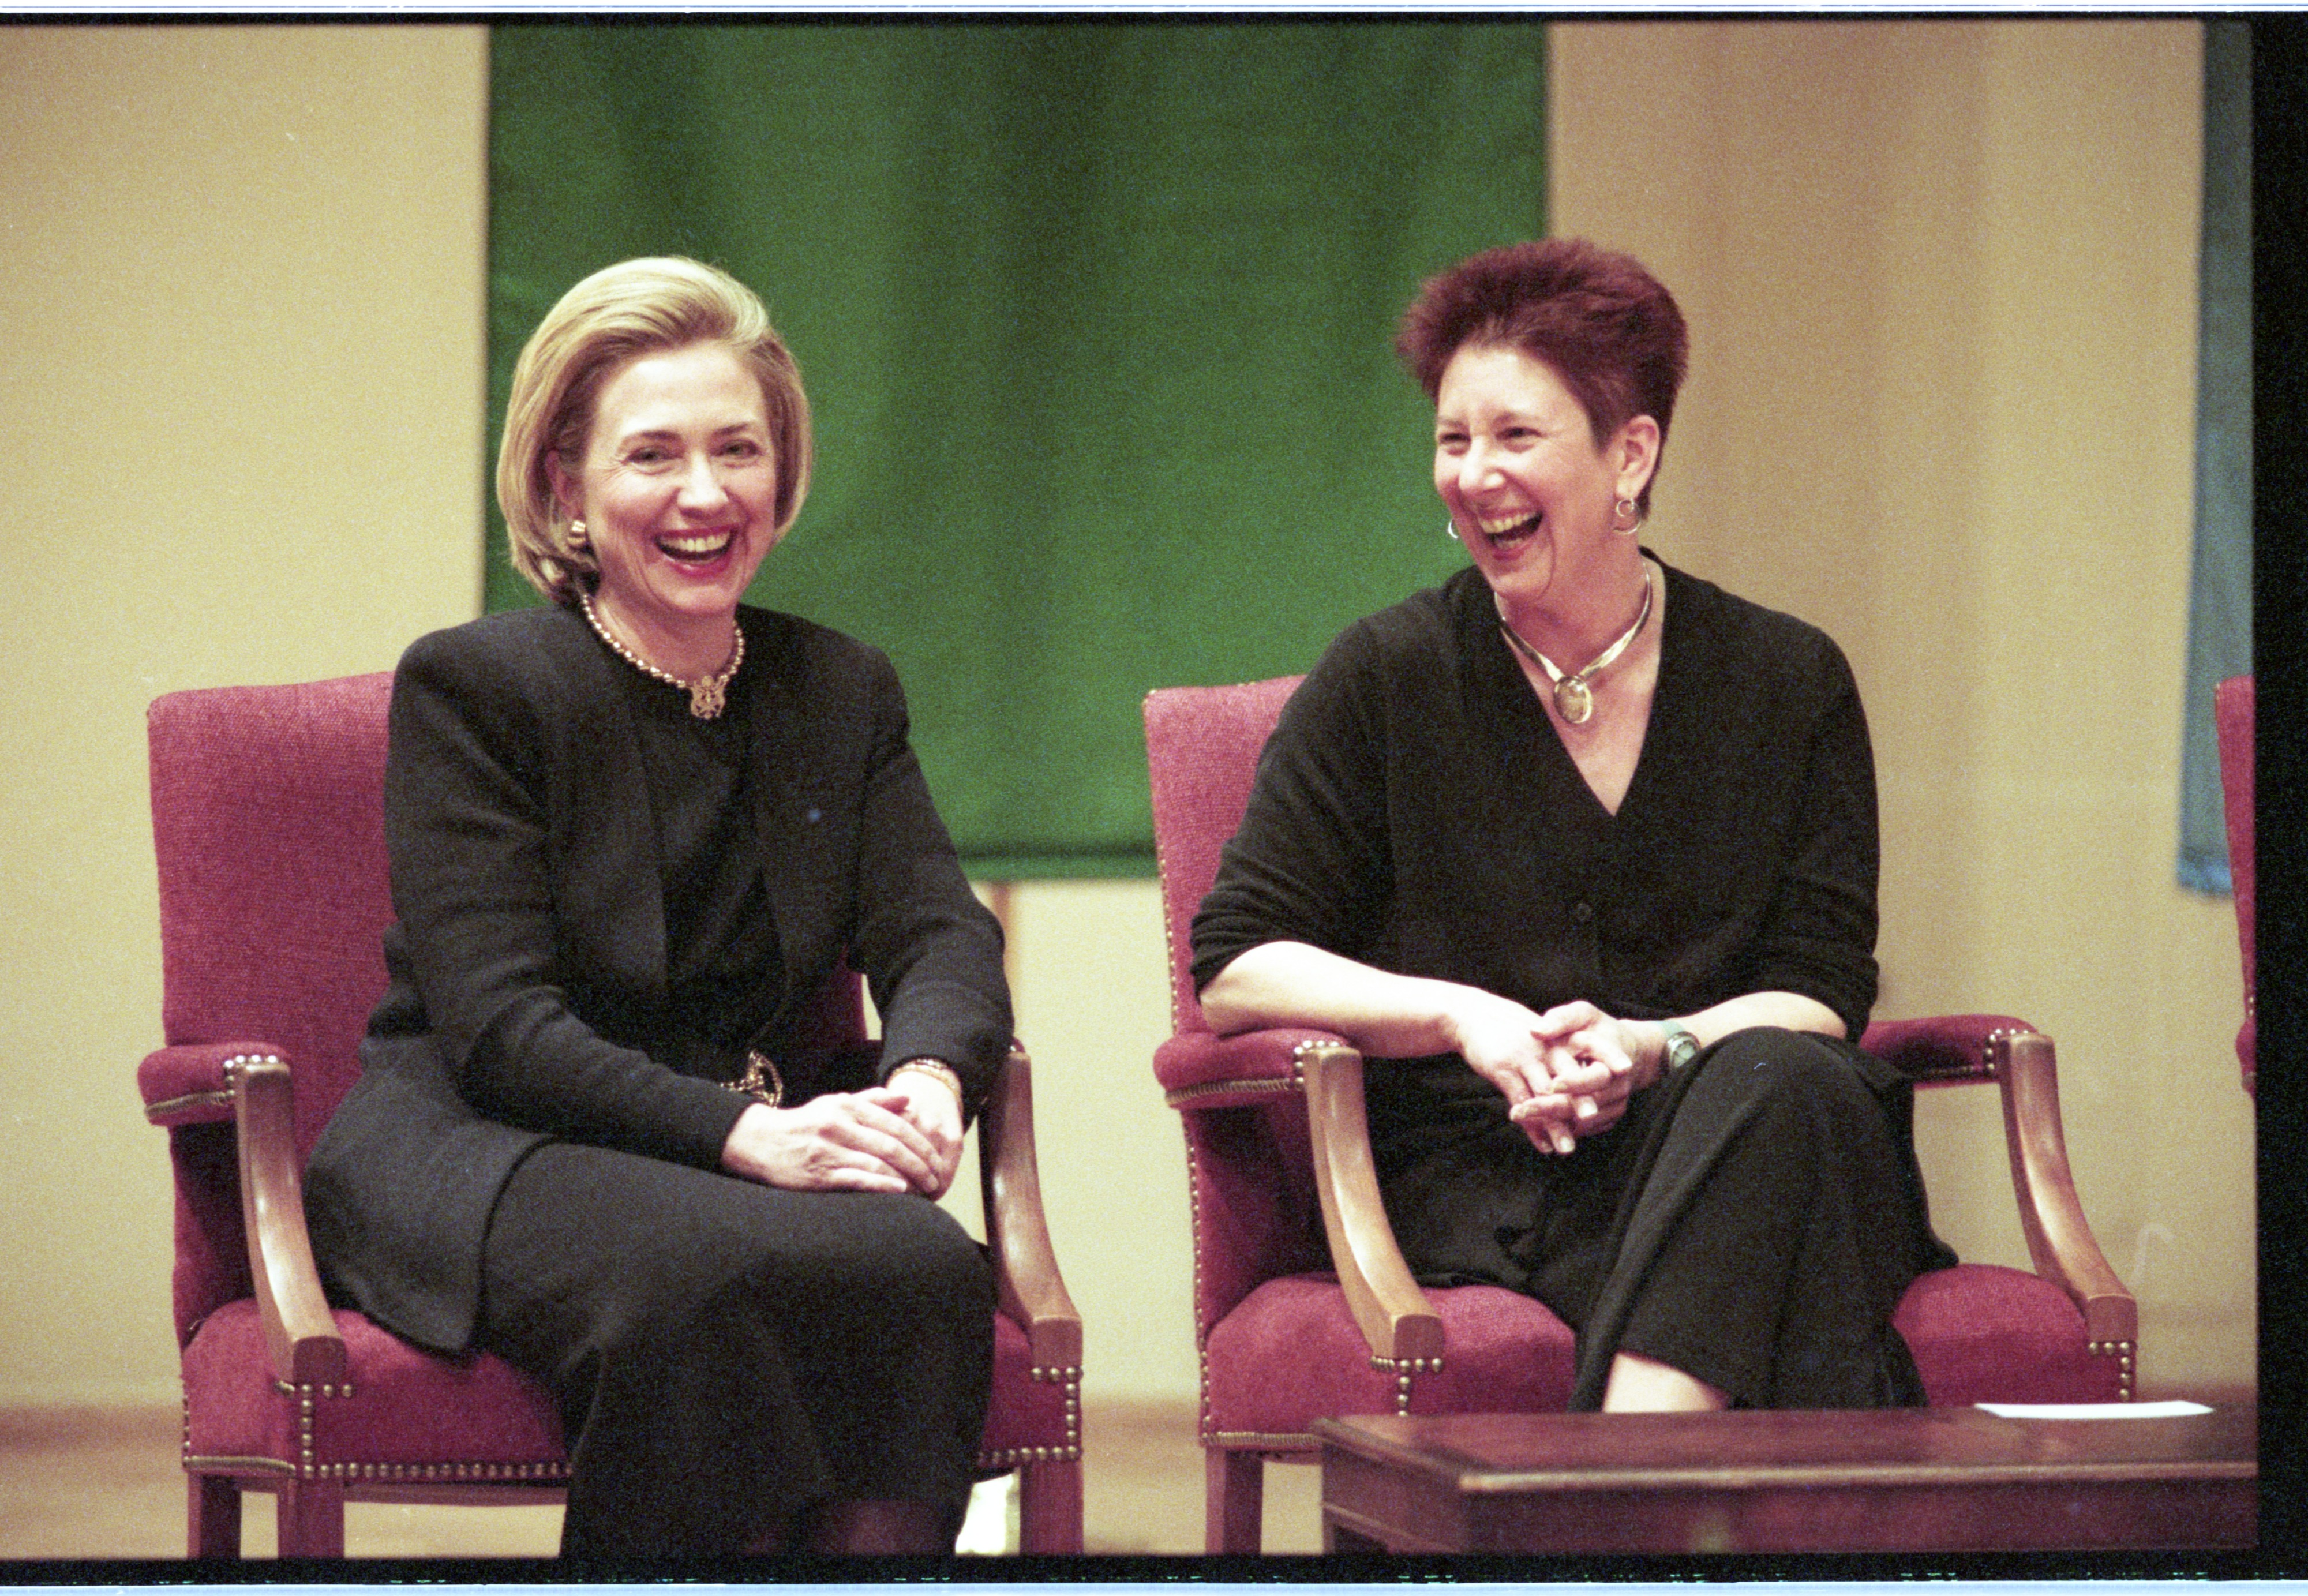 Julie Ellison, University of Michigan Associate Vice President For Research, & Hillary Clinton At Hill Auditorium, April 28, 1998 image